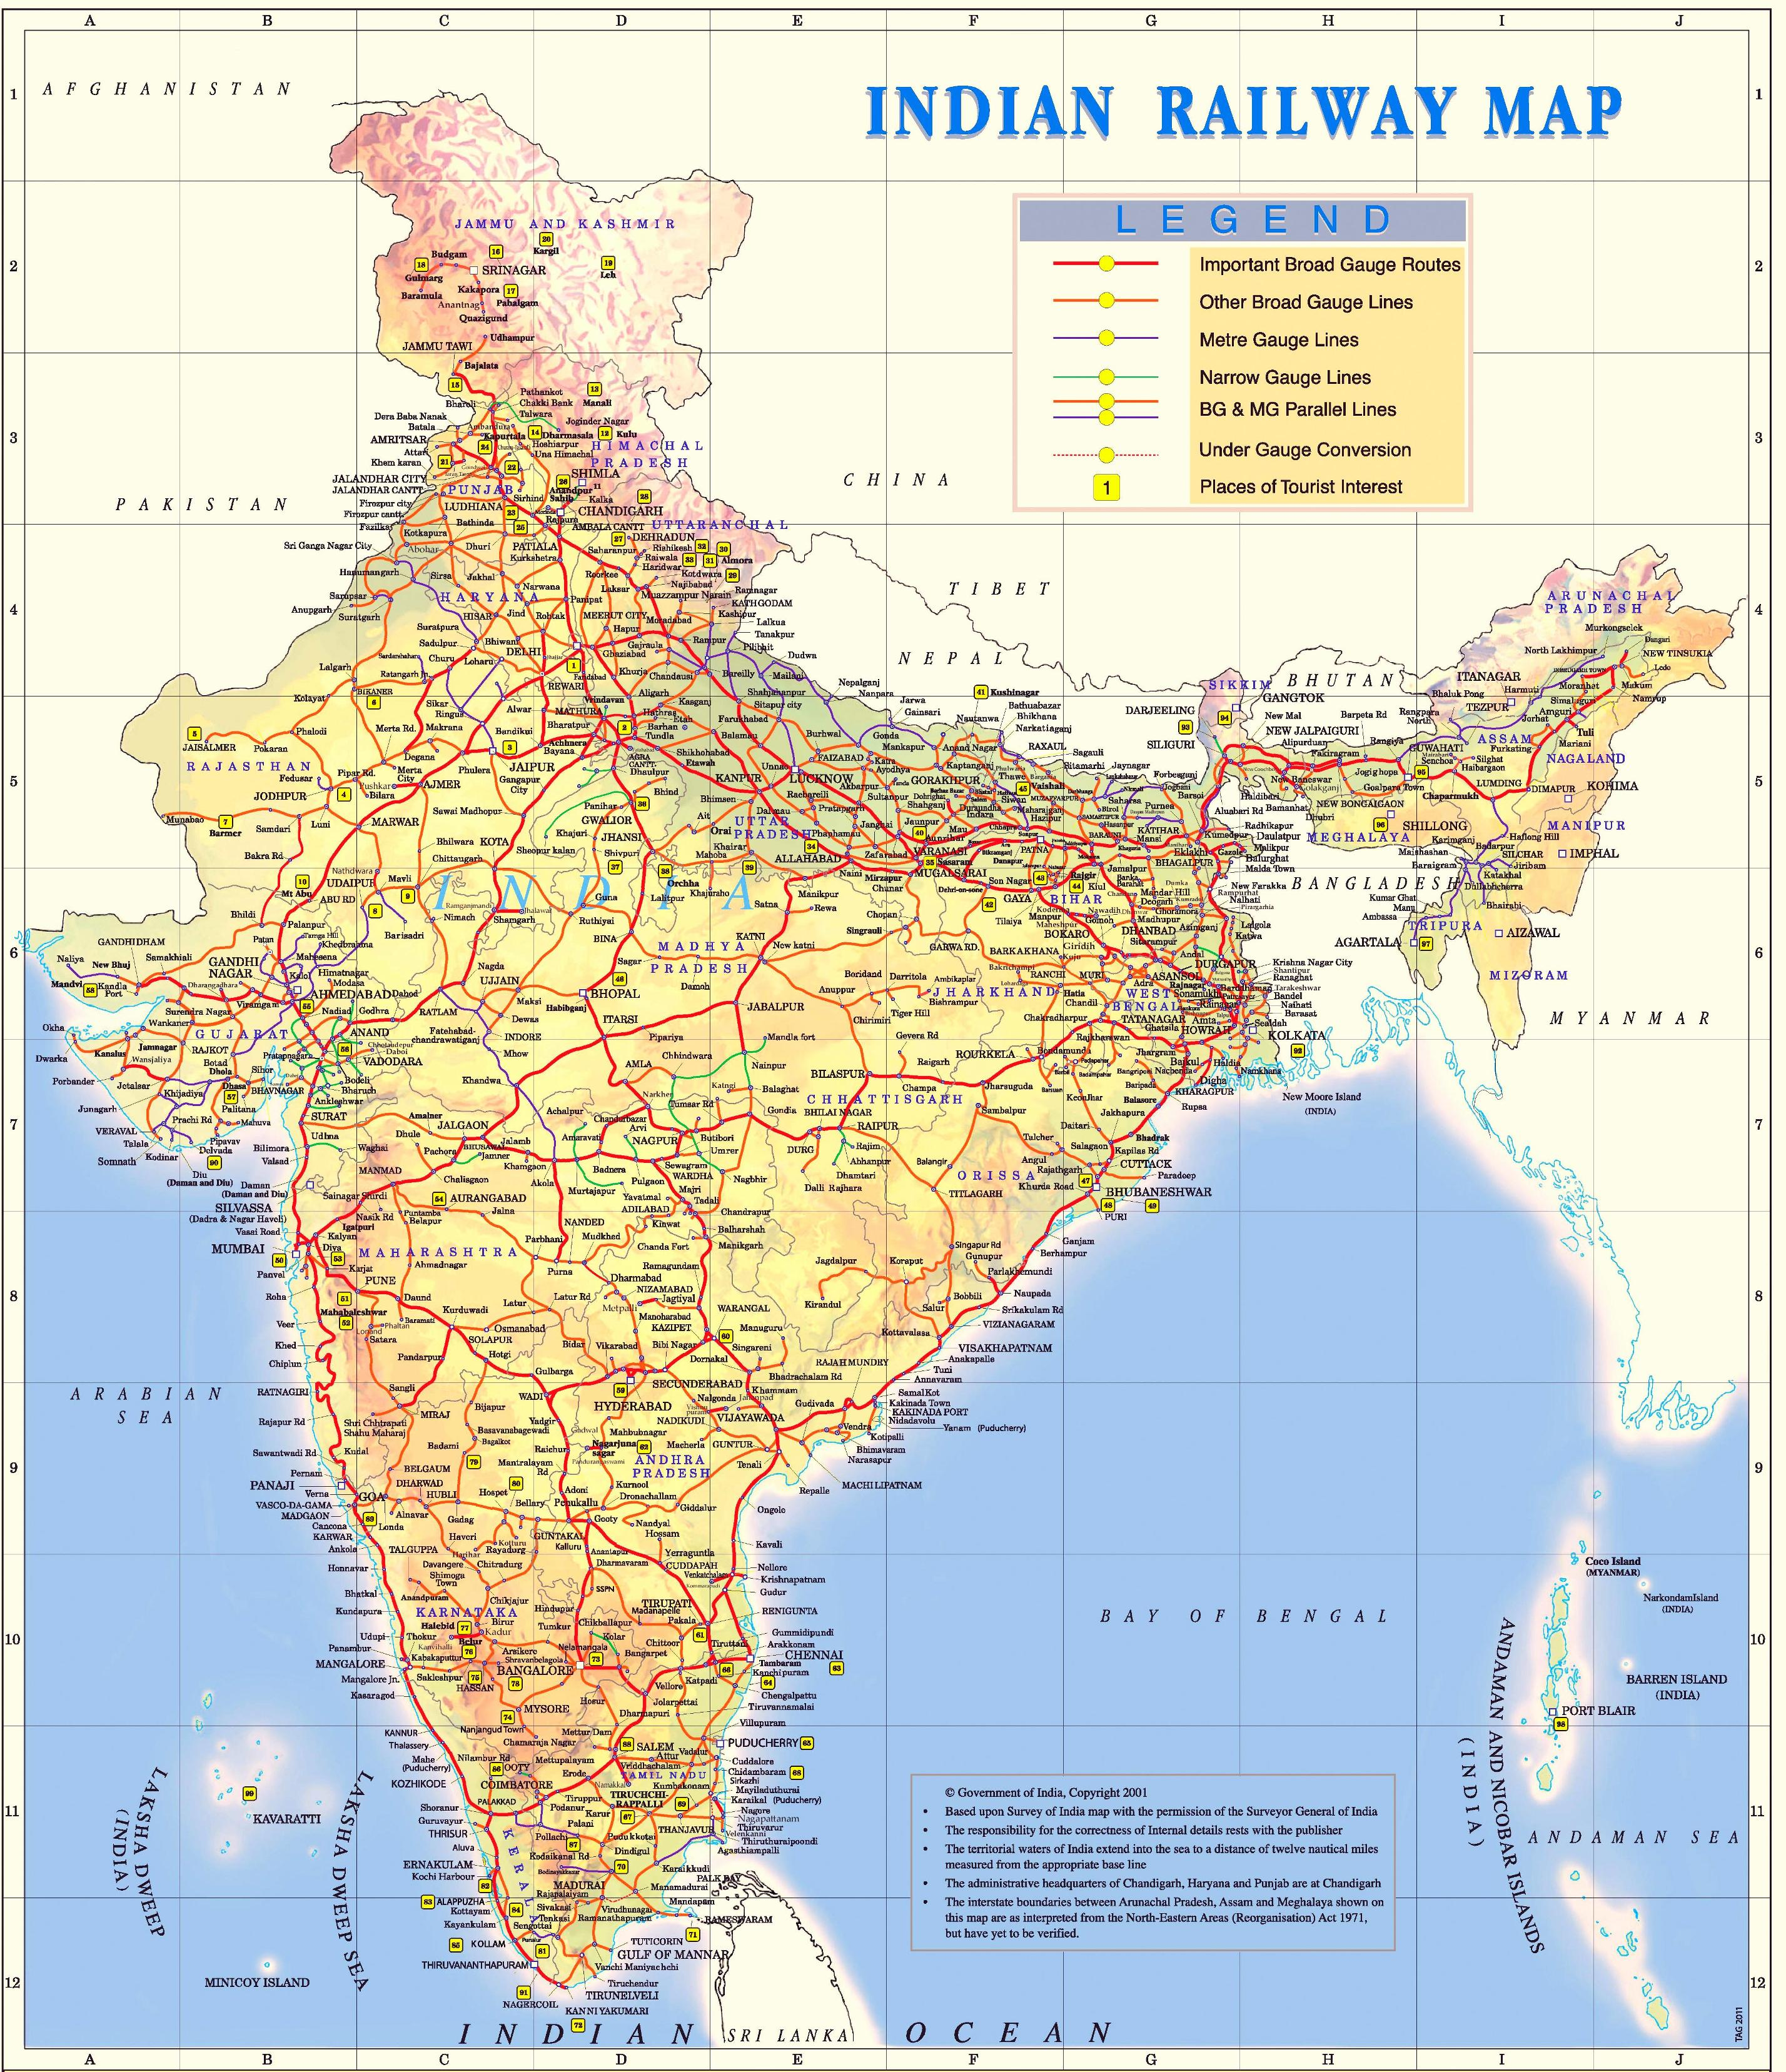 Railway Map of India